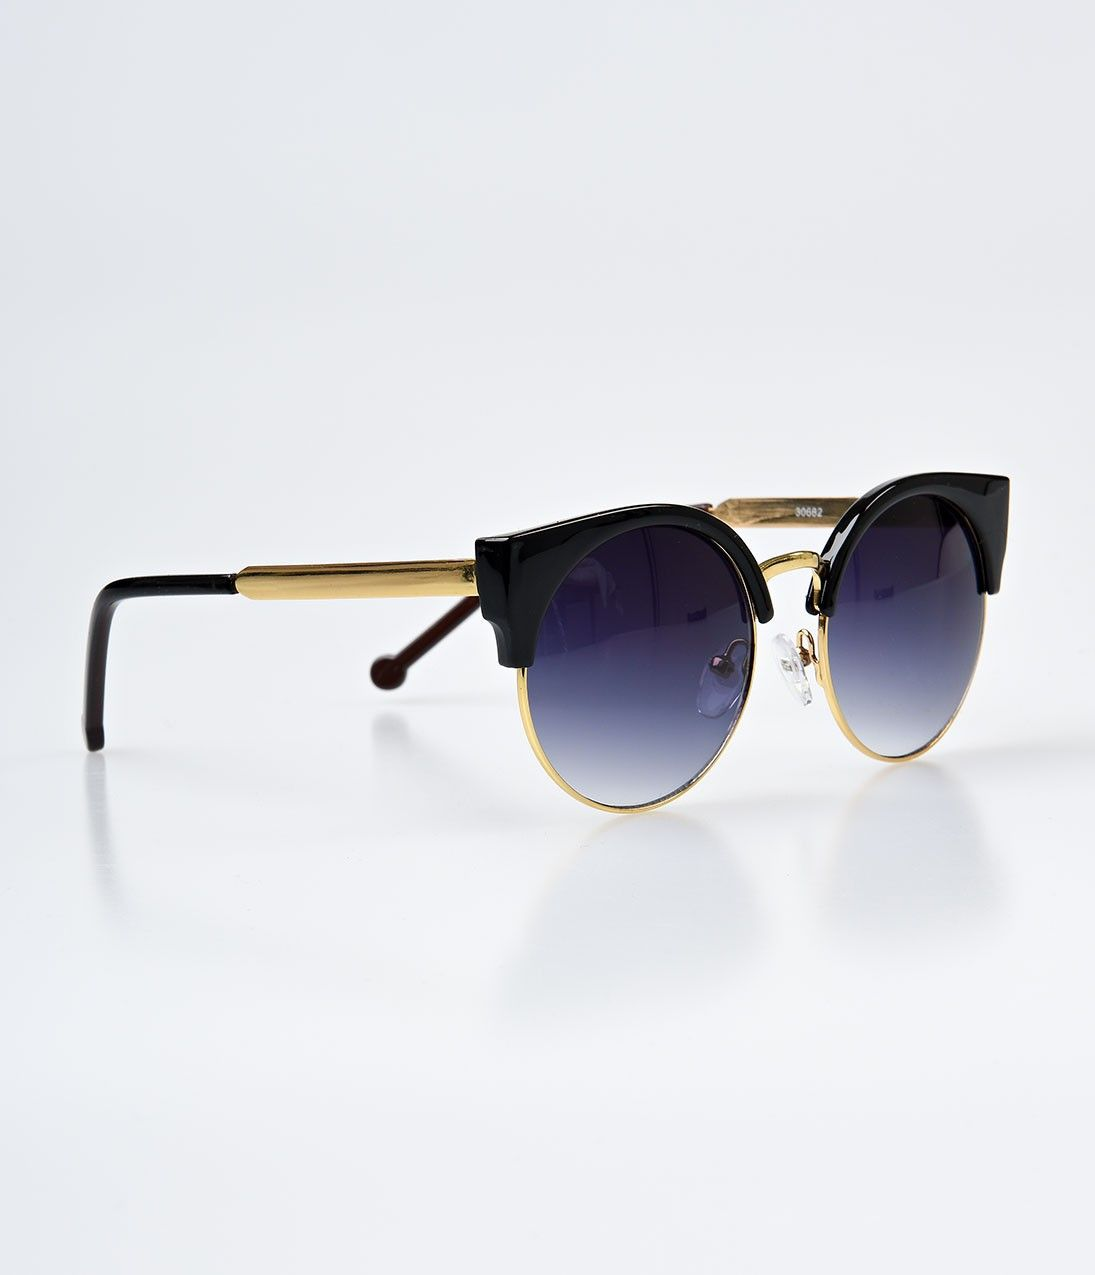 Black & Gold Metal Rounded Gradient Cat Eye Sunglasses